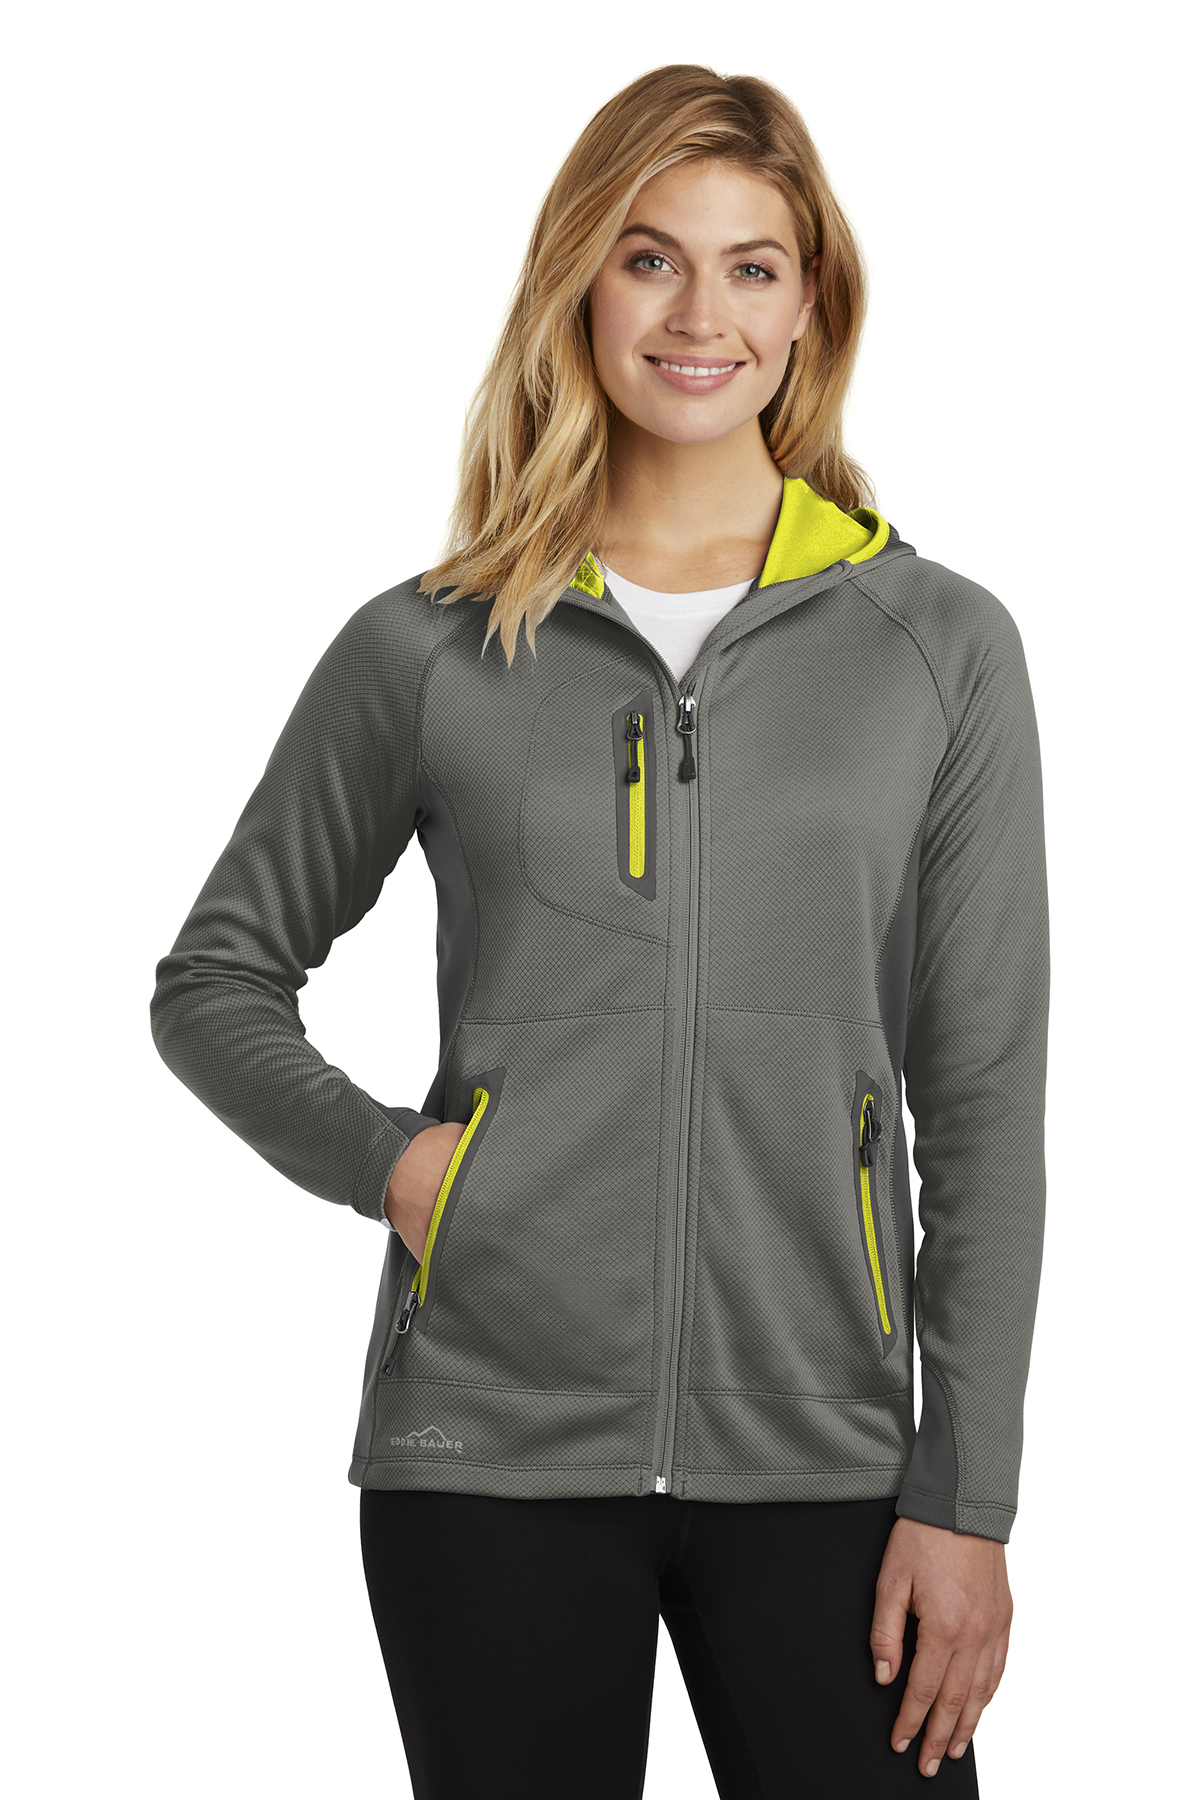 a3290a49101 Eddie Bauer EB245 - Ladies Sport Hooded Full-Zip Fleece Jacket ...